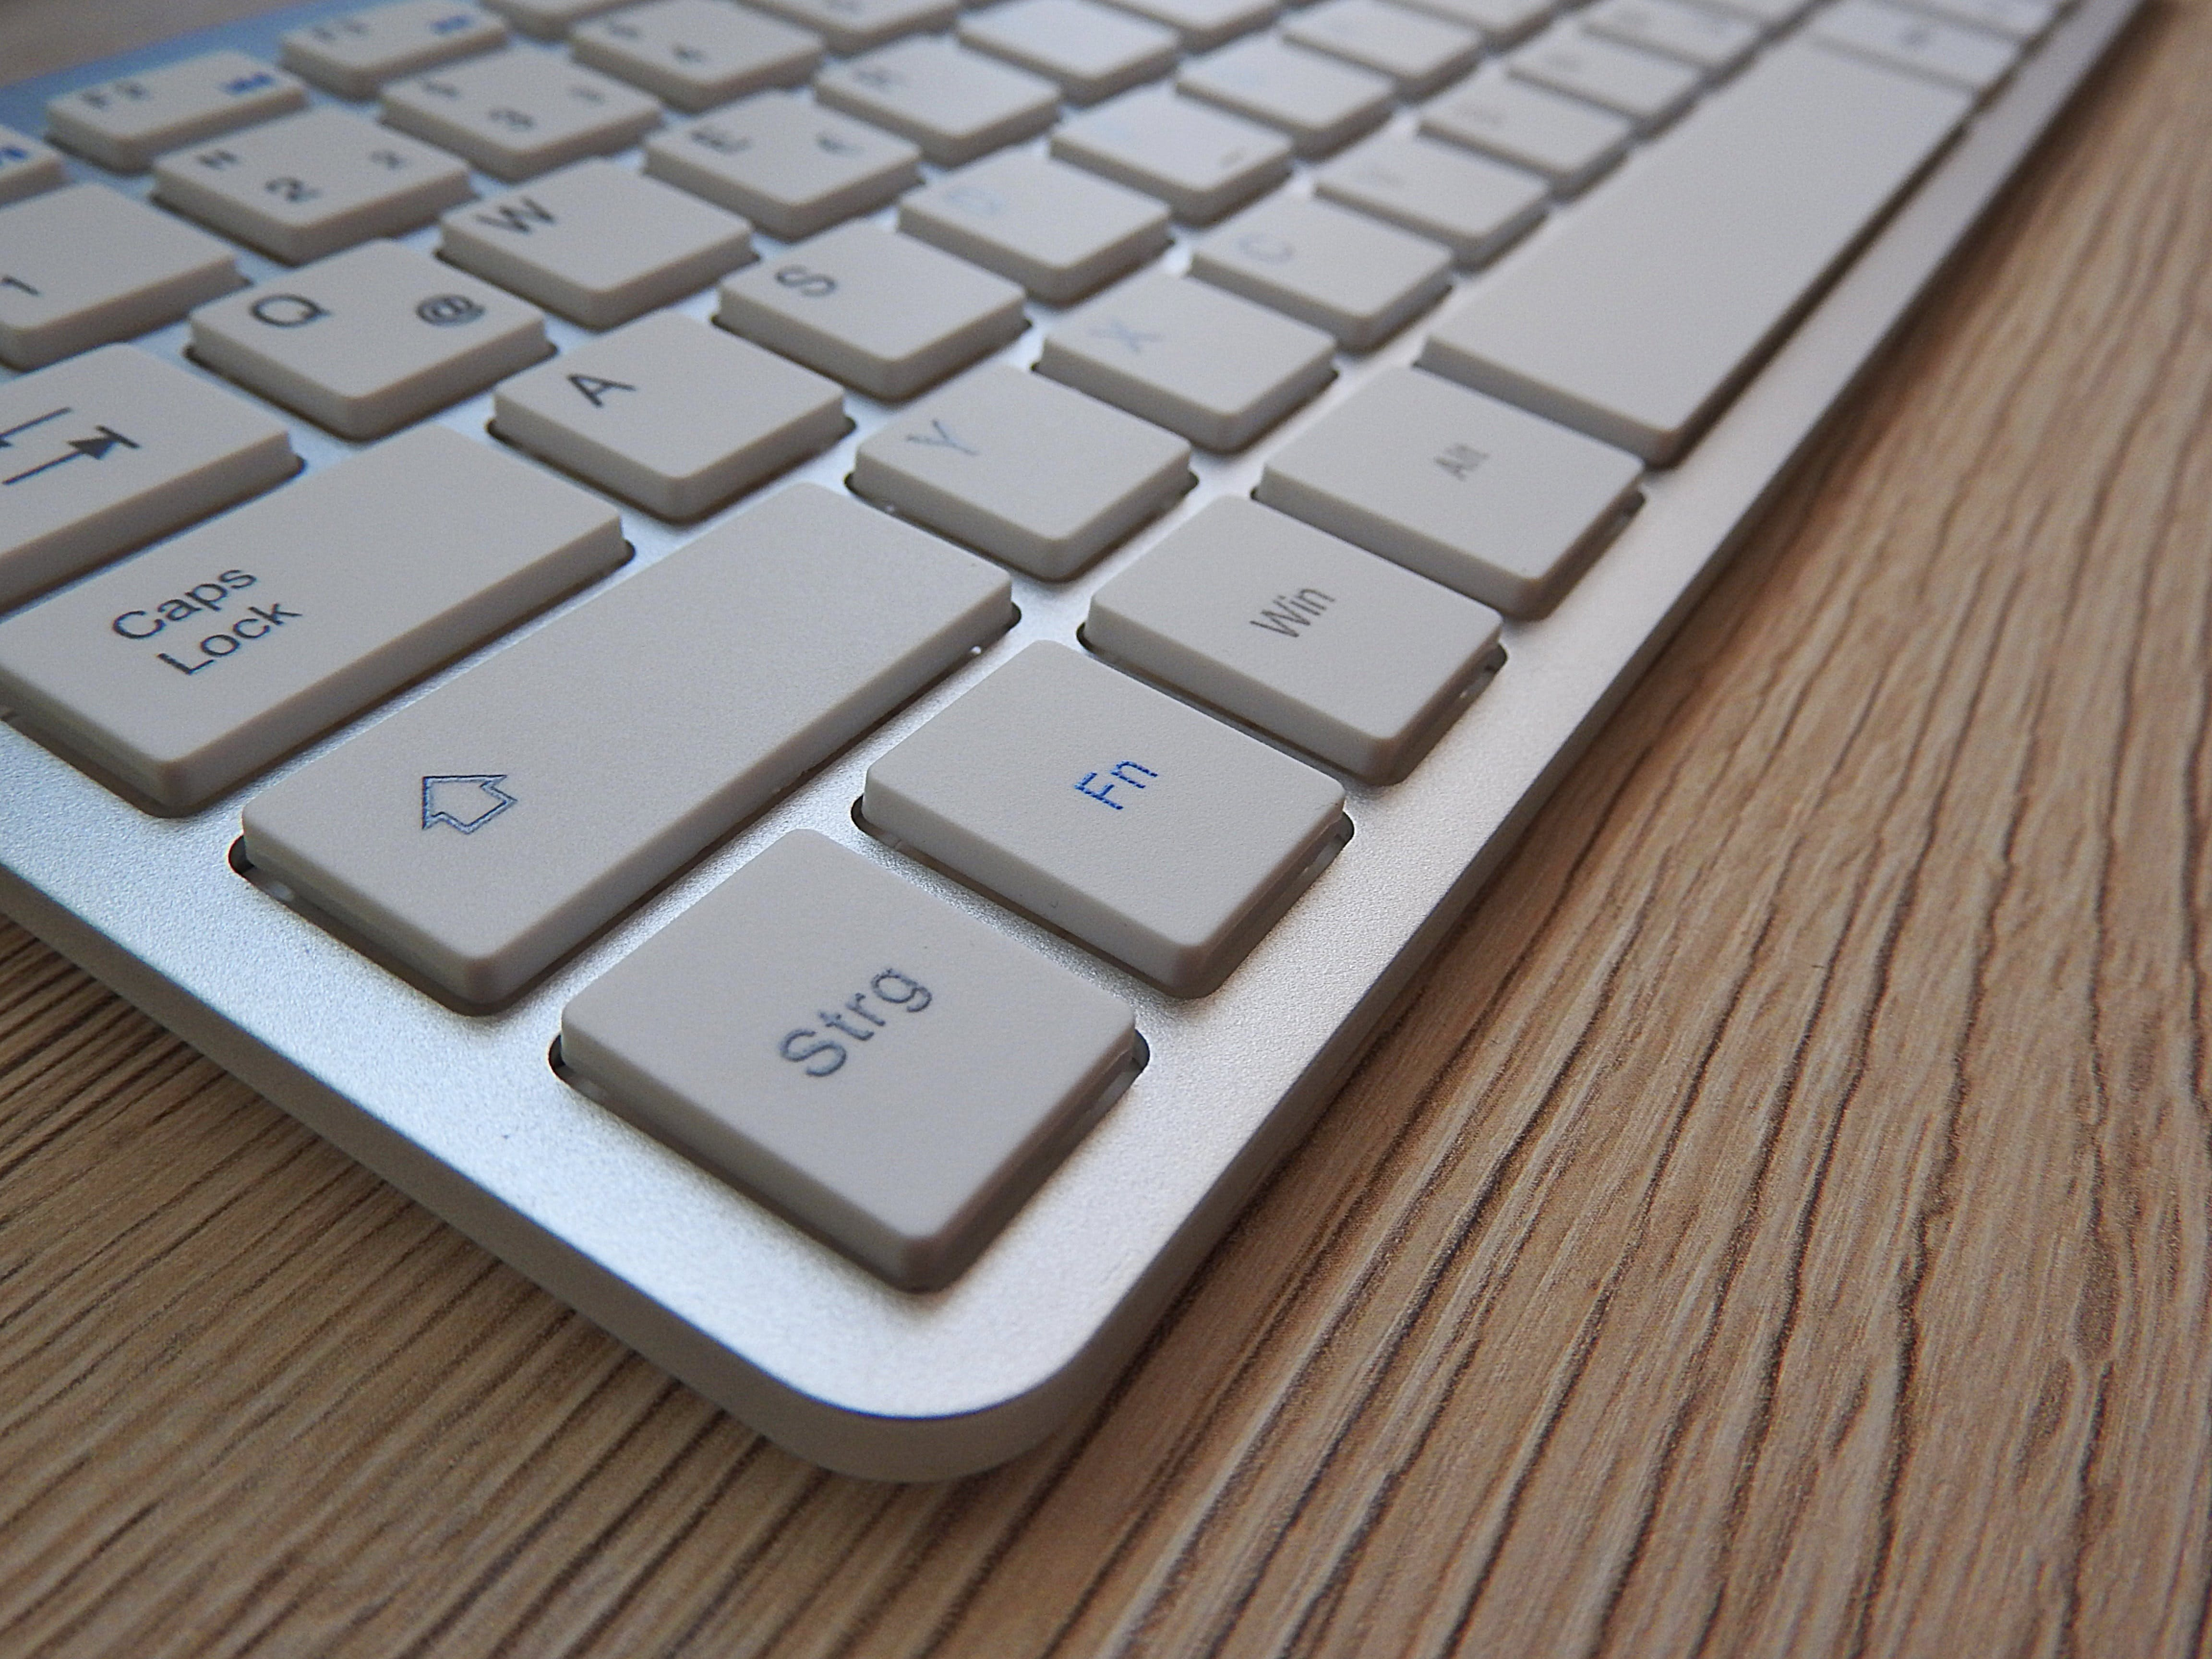 White Computer Keyboard on Brown Wooden Table